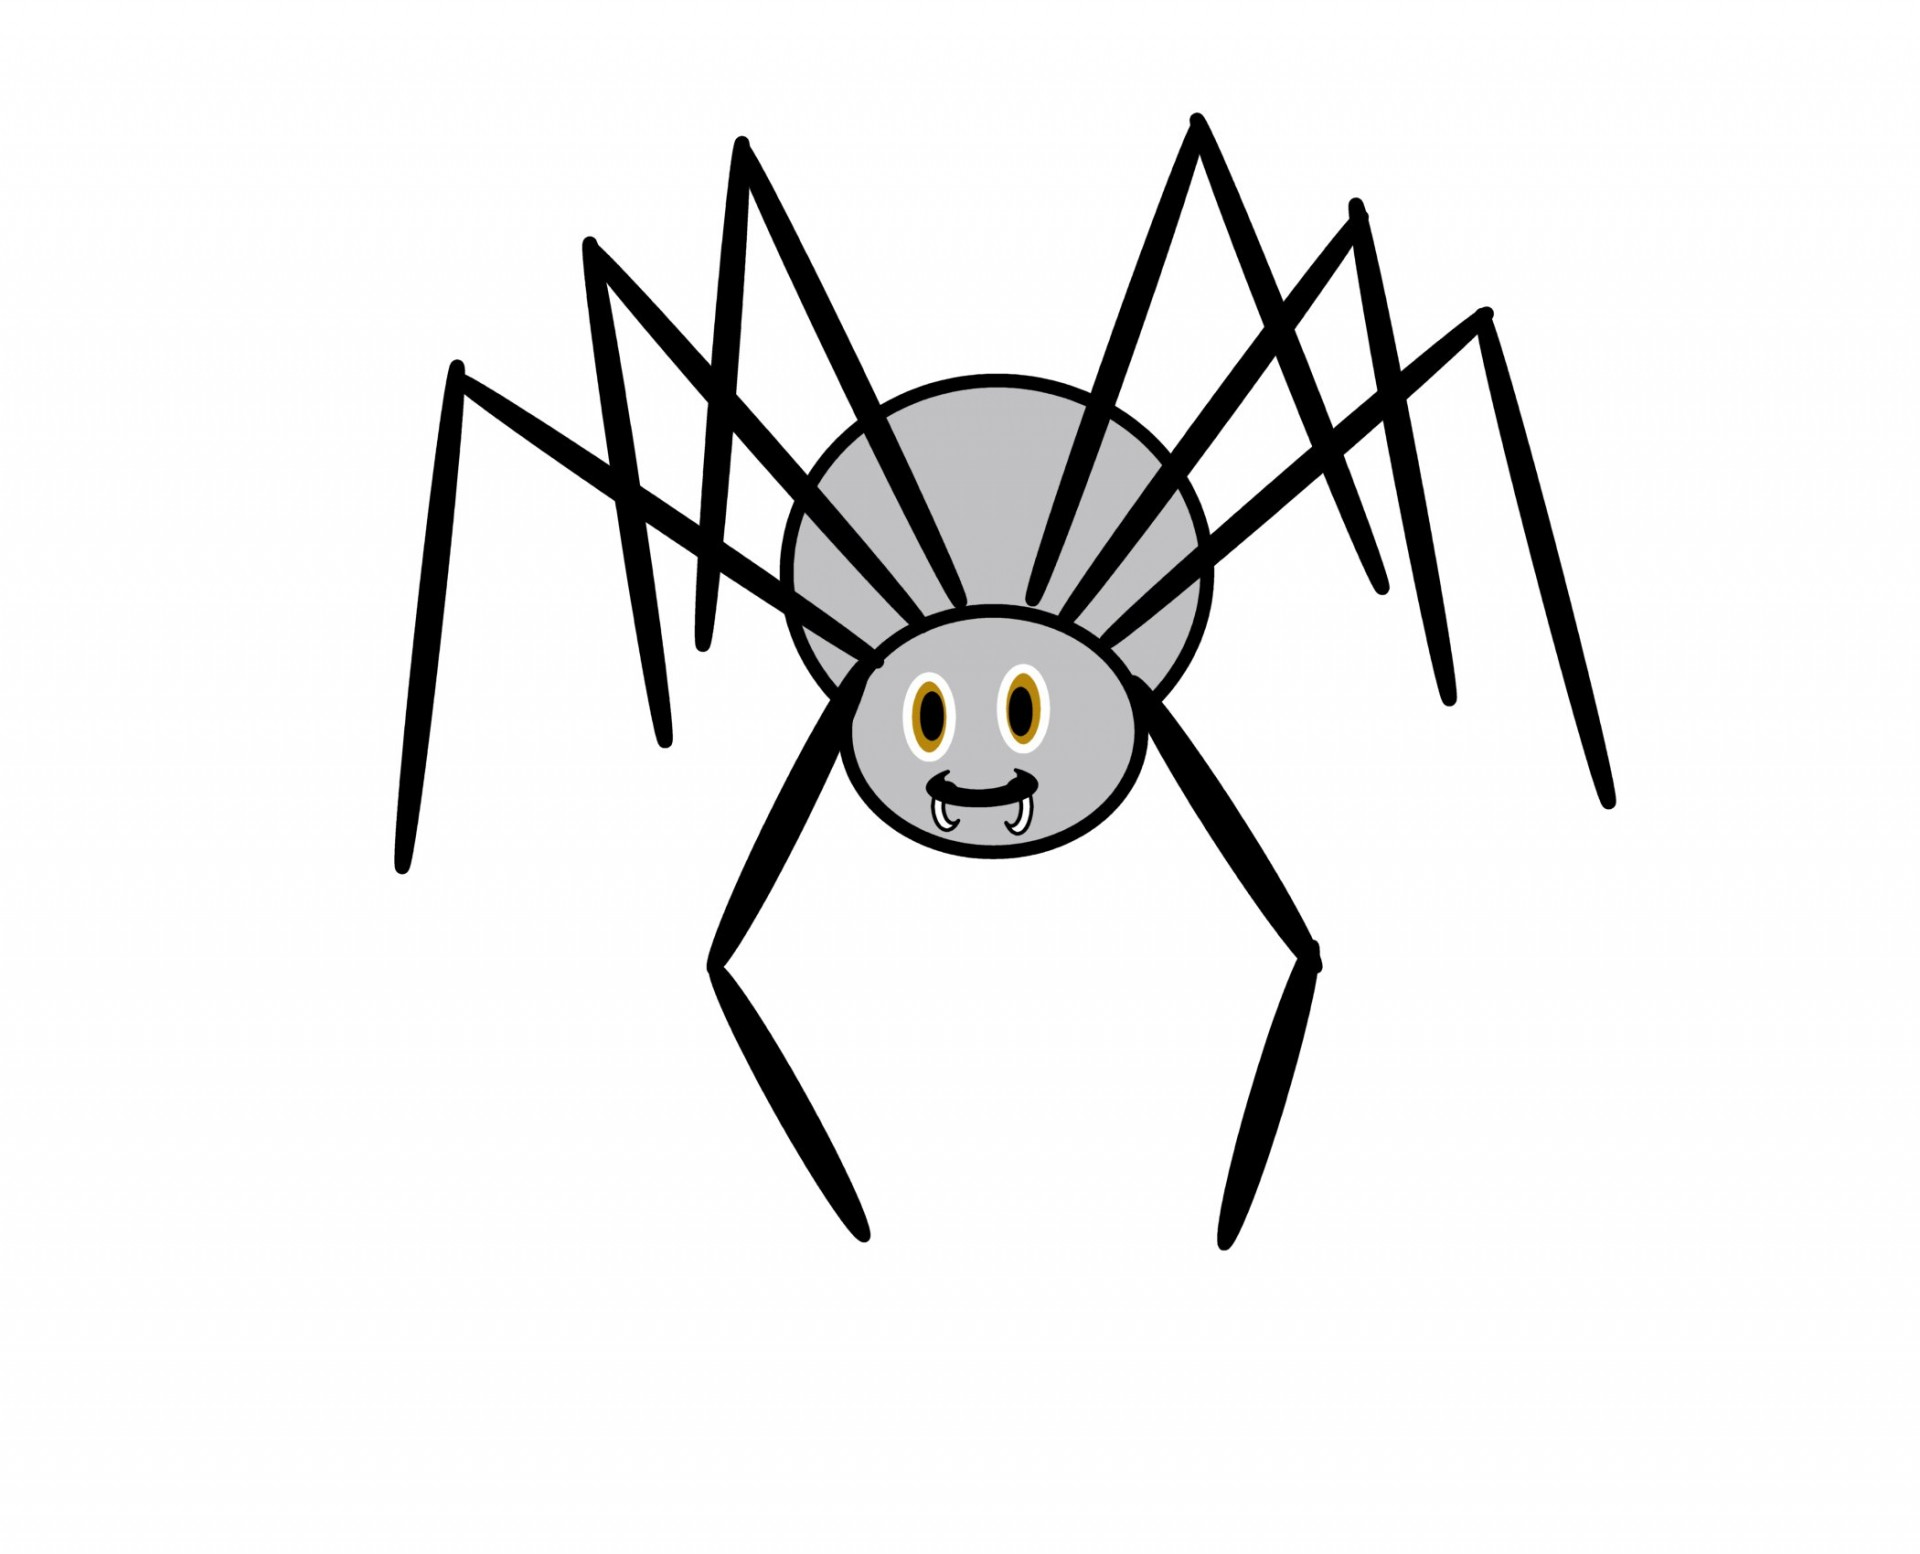 image library stock Free spiders cliparts download. Spider clipart